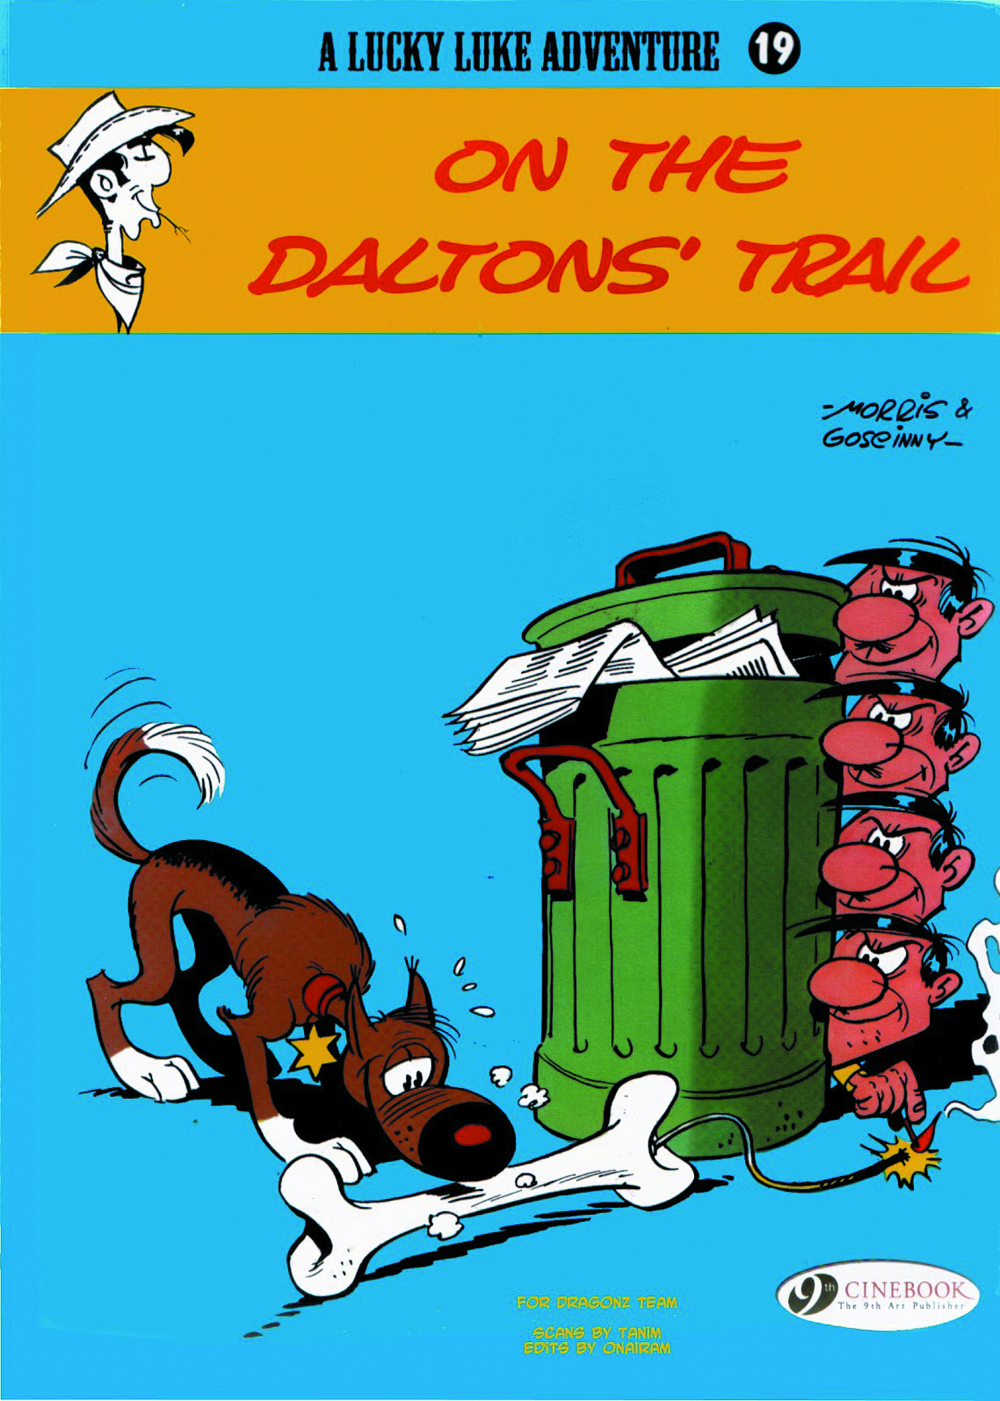 LUCKY LUKE TP VOL 19 ON THE DALTONS TRAIL